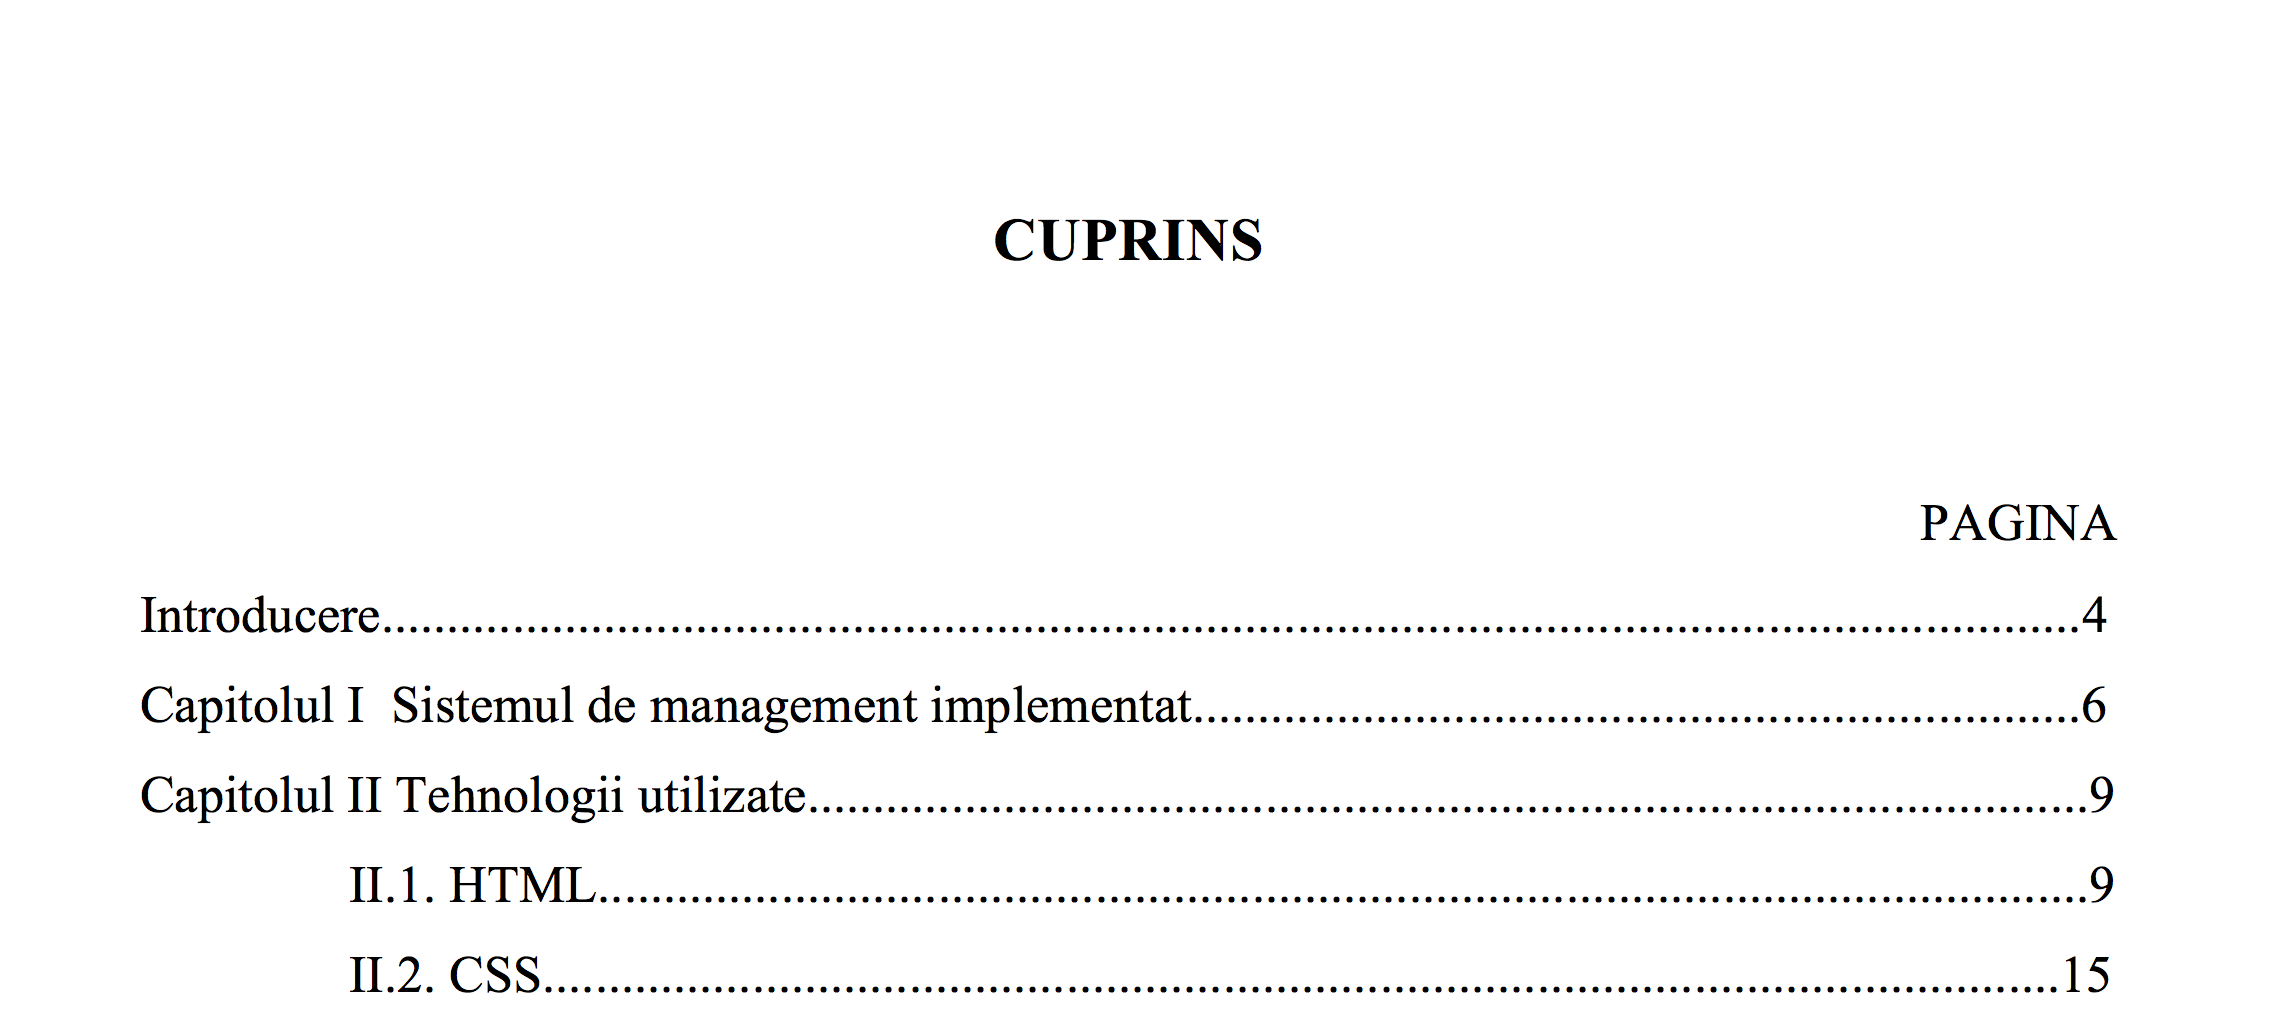 cuprins in word